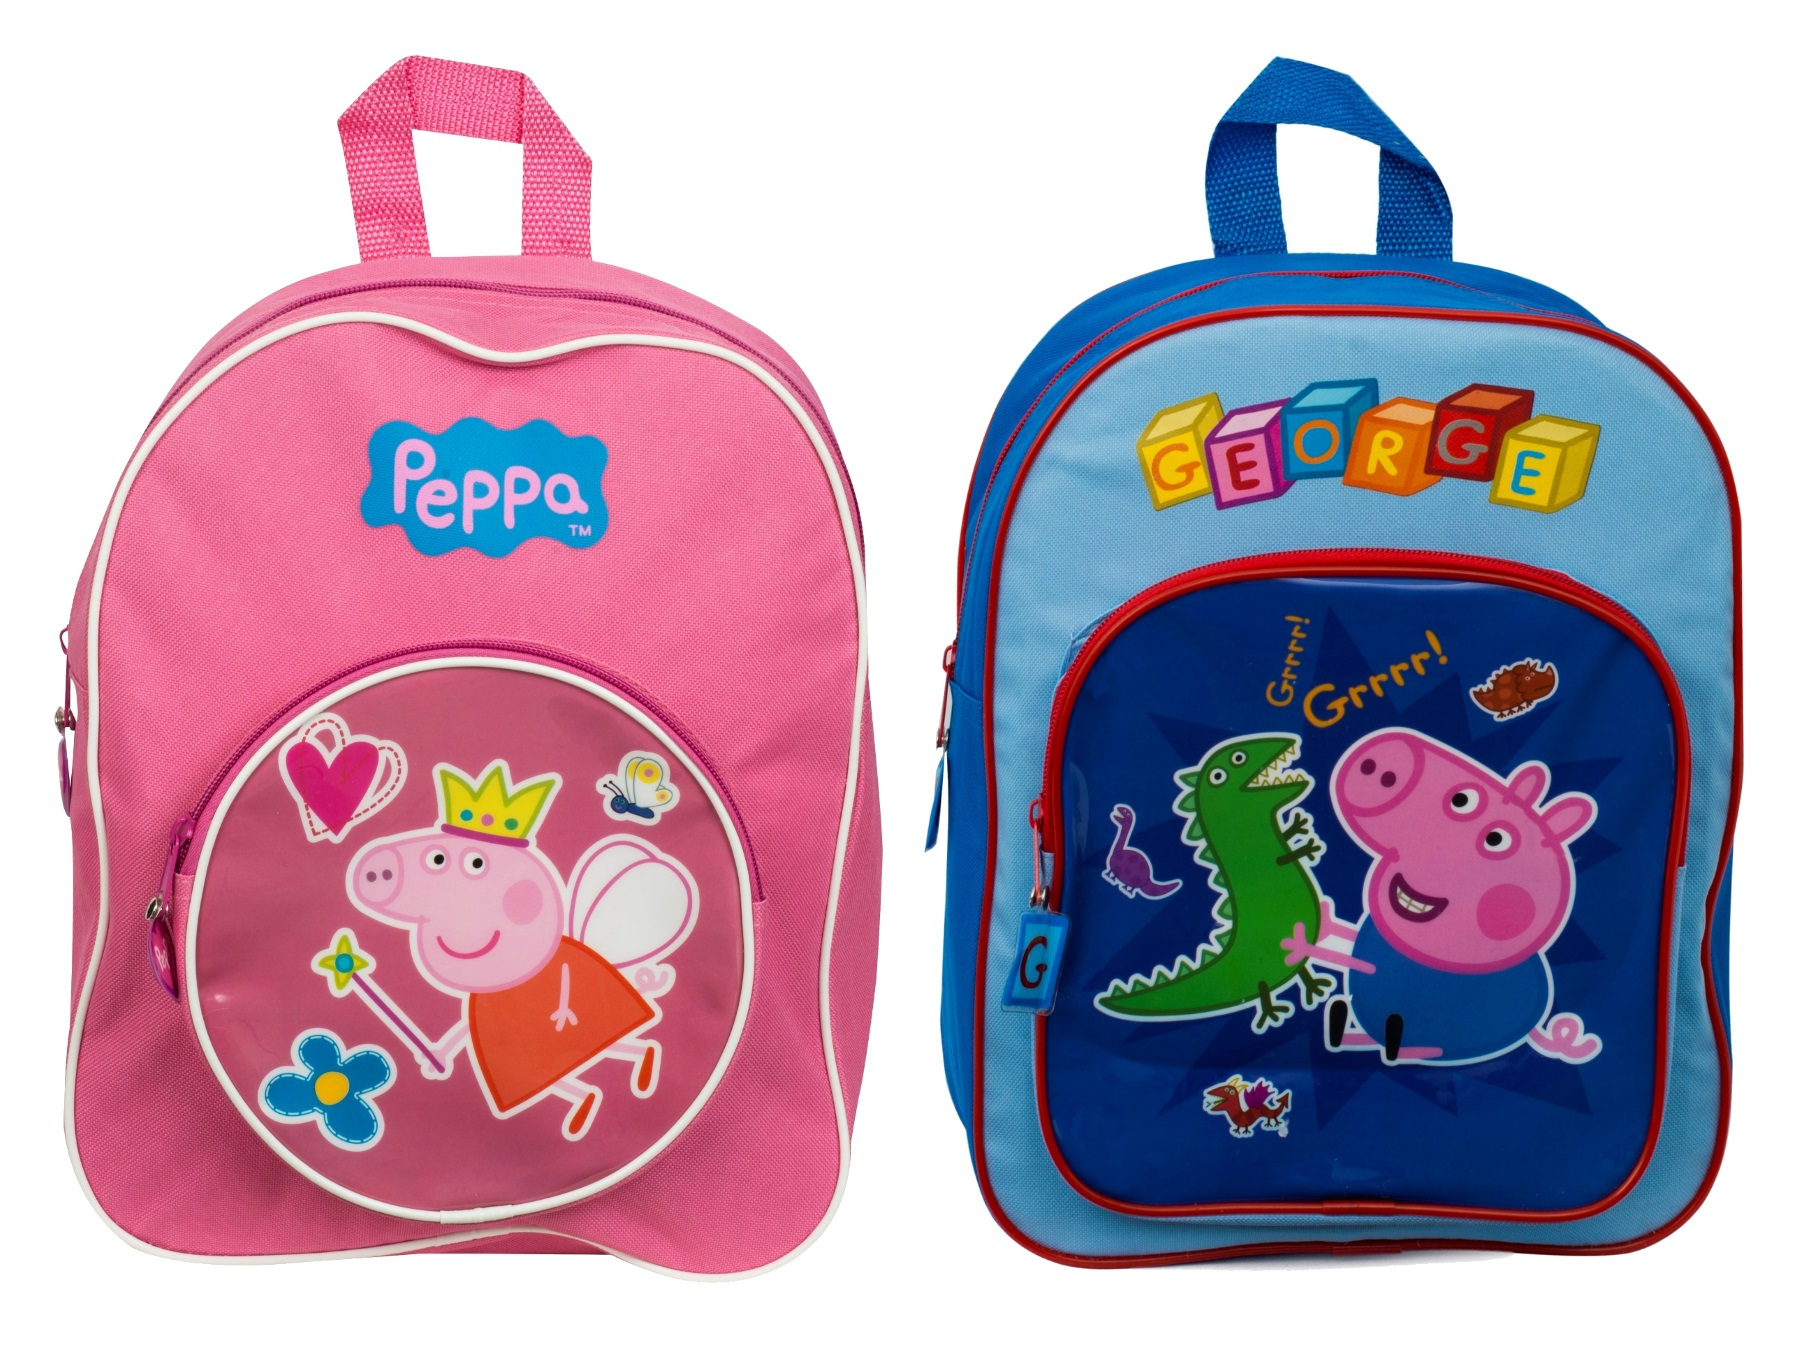 Kids Girls Boys Peppa Pig George School Bag Travel Rucksack ... 3146142228fe9